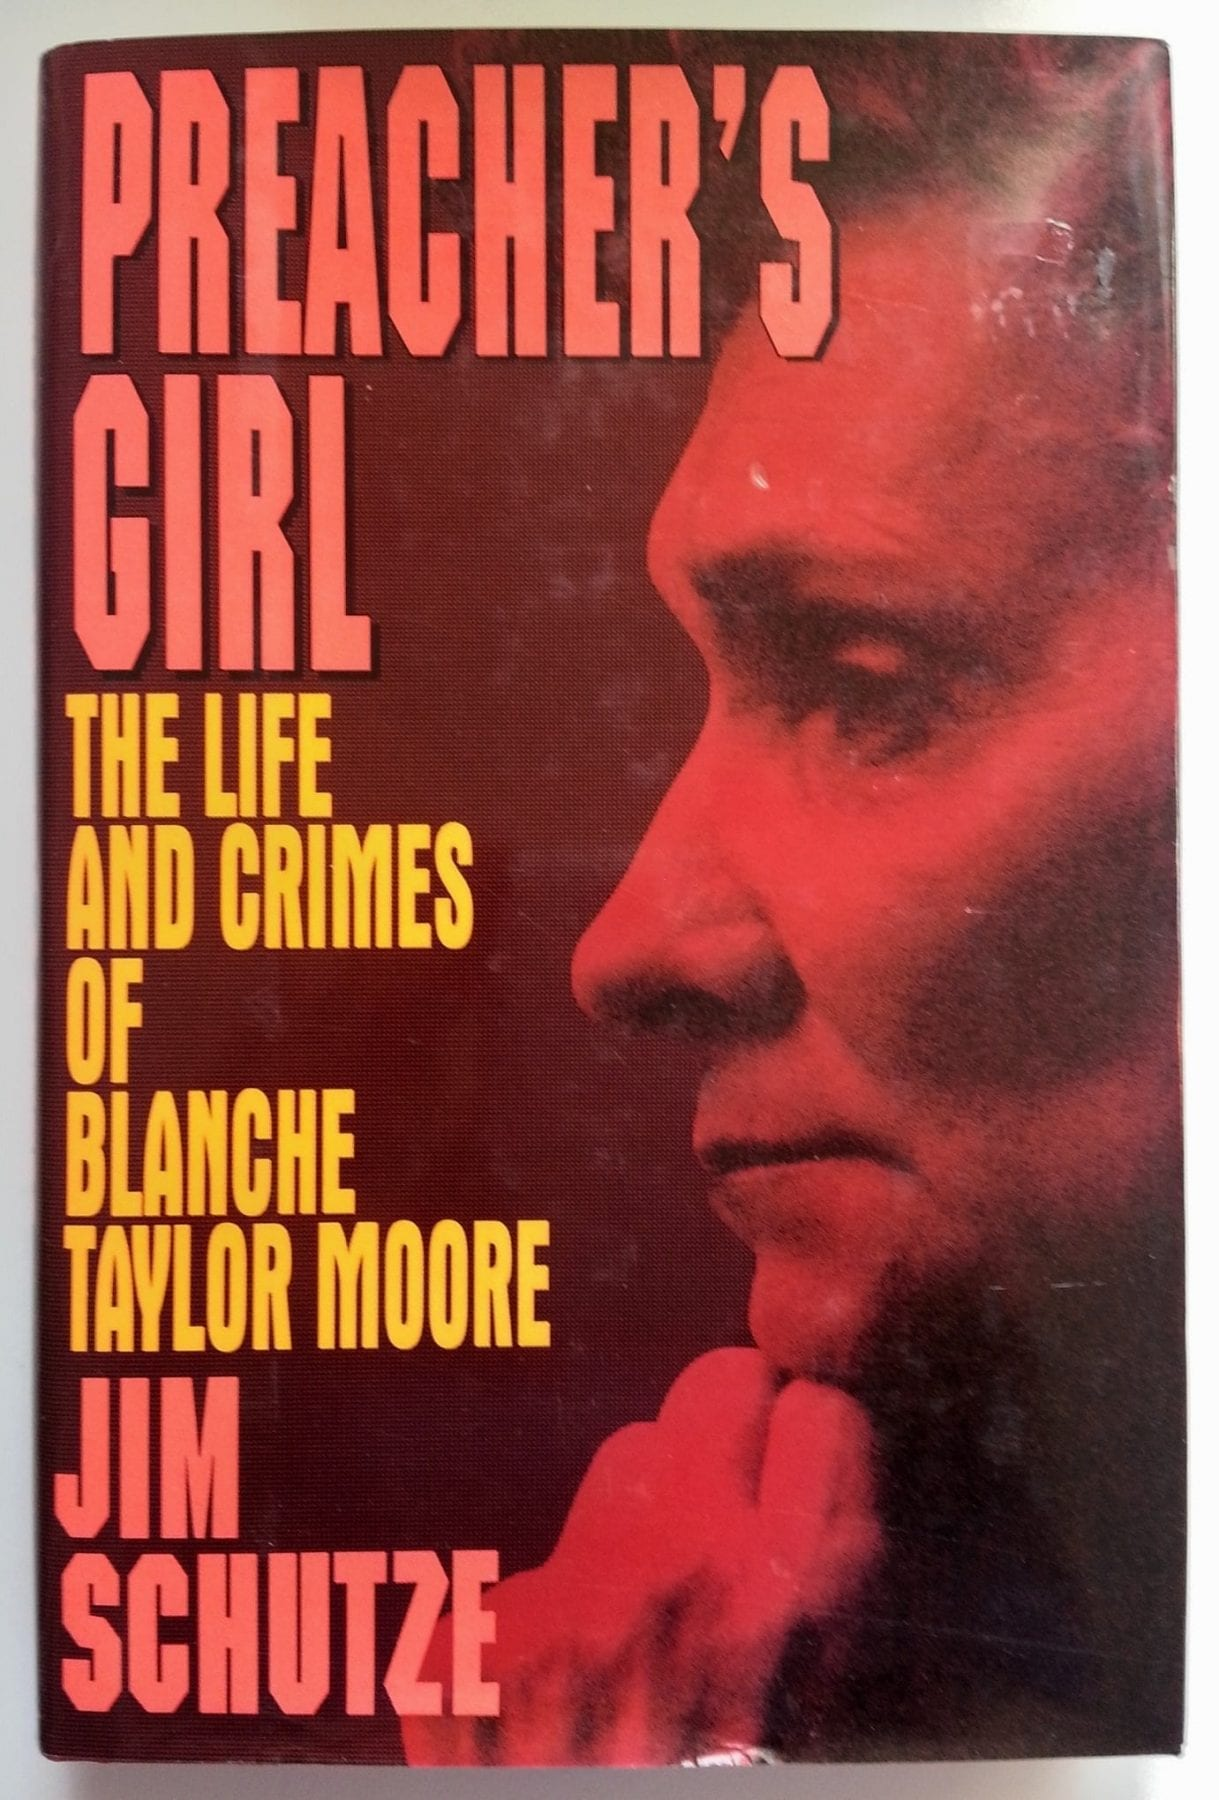 Preacher's Girl- The Life and Crimes of Blanche Taylor Moore by Jim Schutze